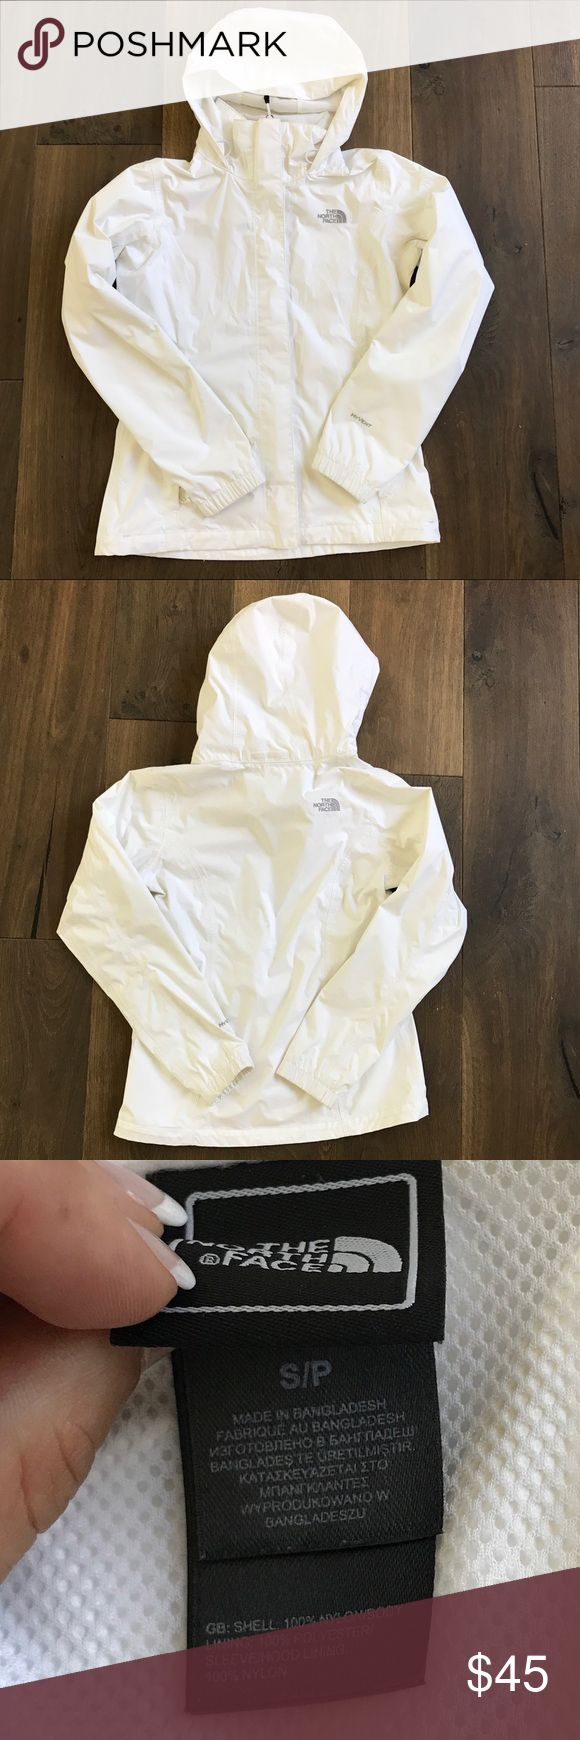 The North Face - women's rain jacket White. Size small. Excellent condition. No holes. All zippers work. The North Face Jackets & Coats